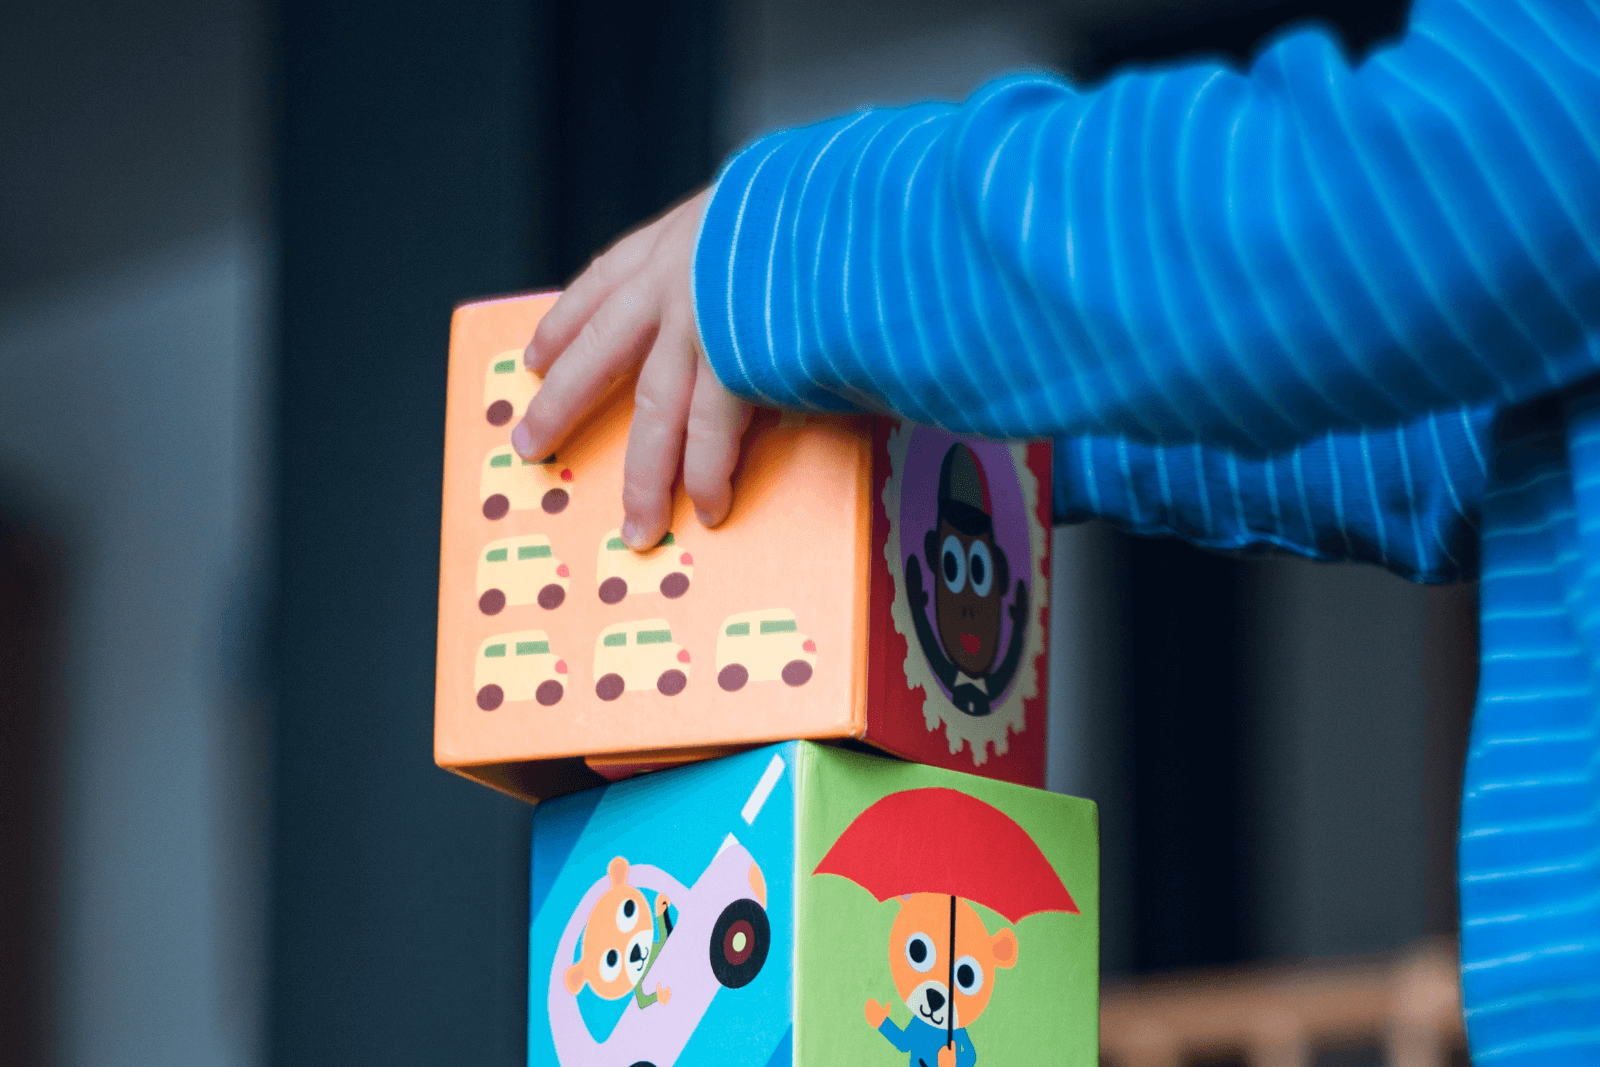 Child learning to play with wooden blocks